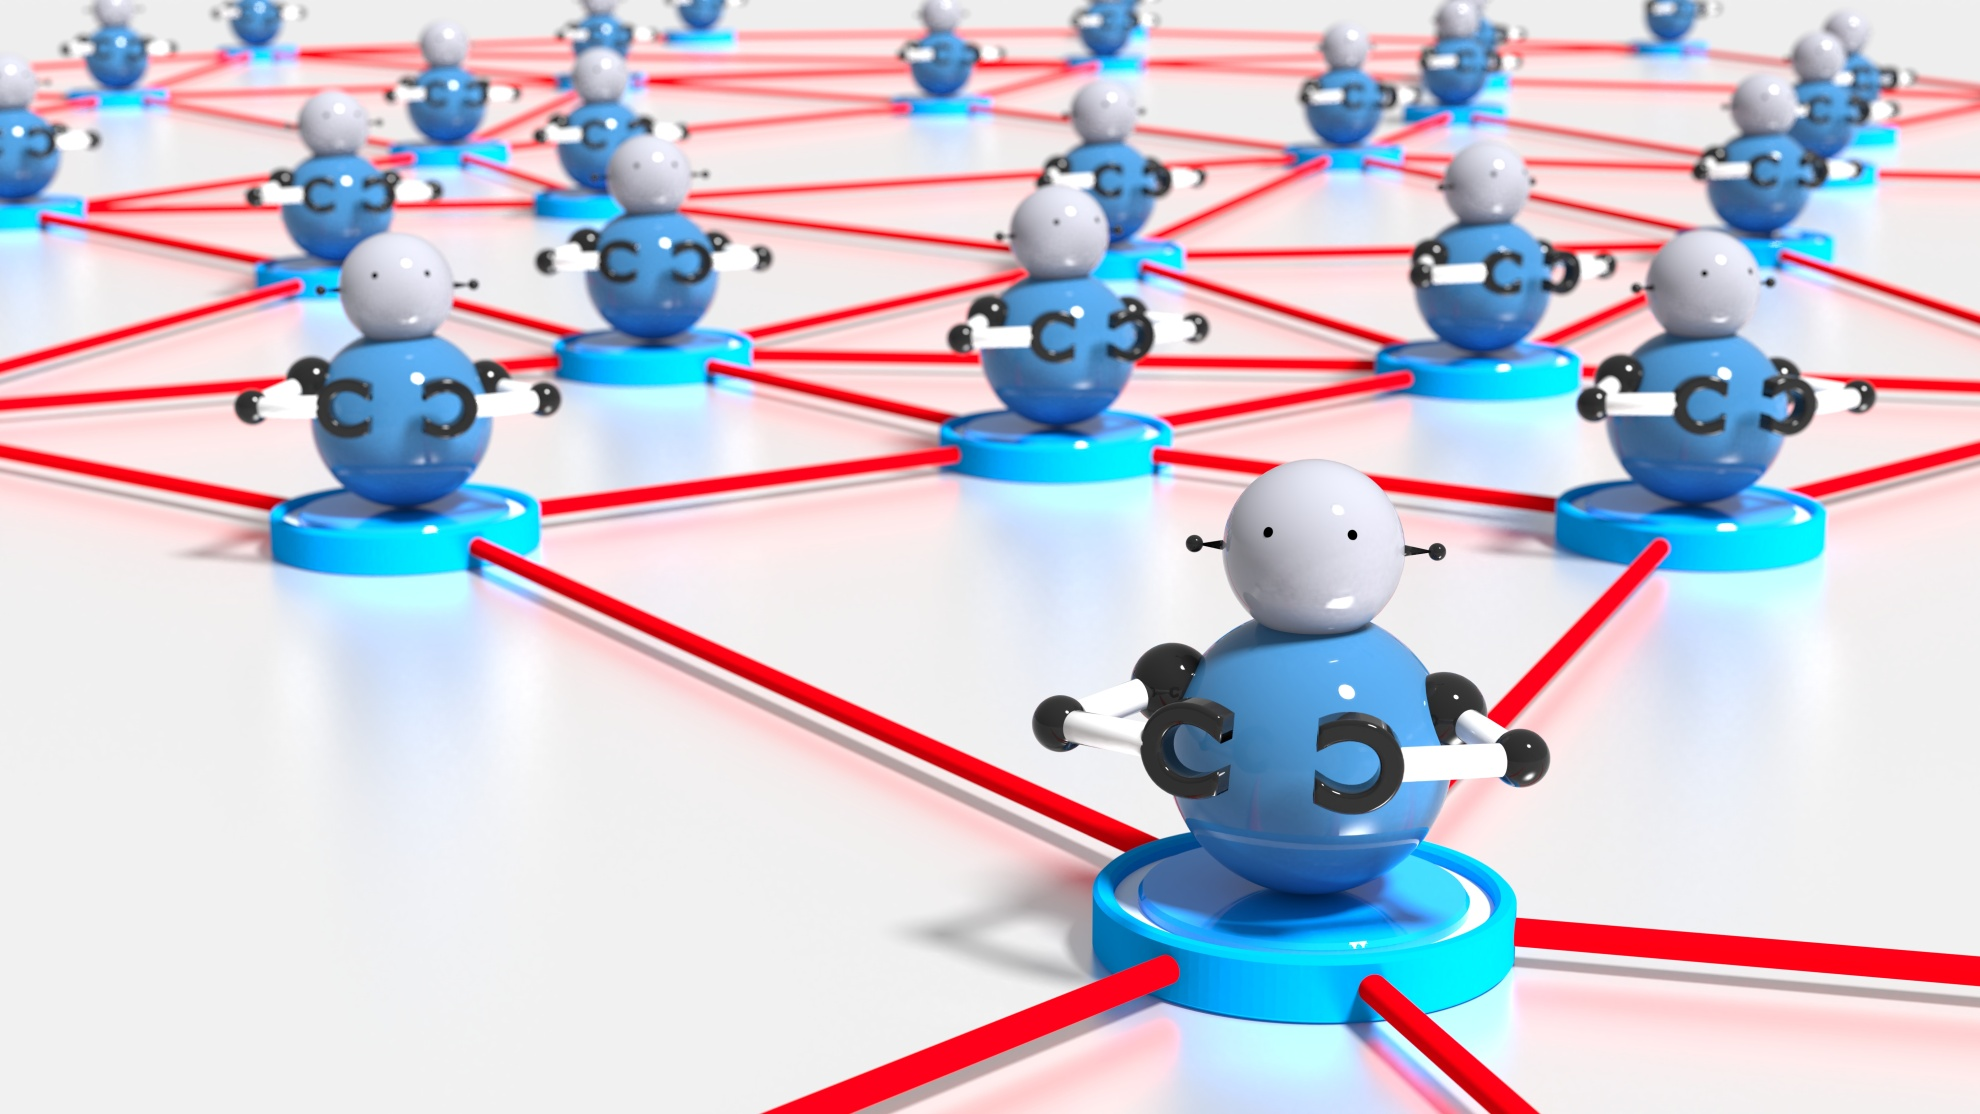 Network-of-platforms-with-bots-on-top-botnet-cybersecurity-concept-926536690_6000x3375-1